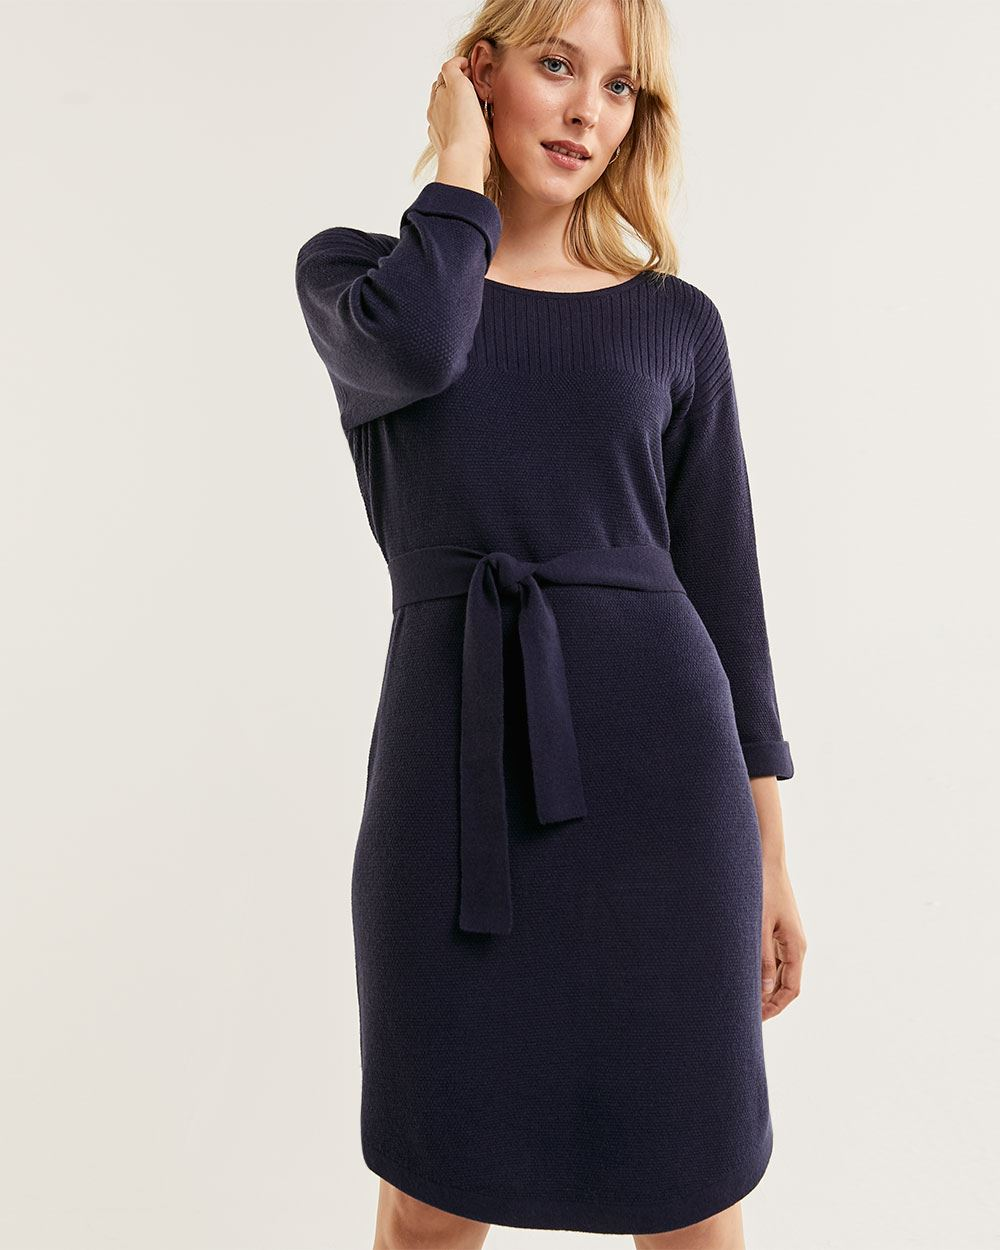 3/4 Sleeve Boat Neck Sweater Dress with Belt